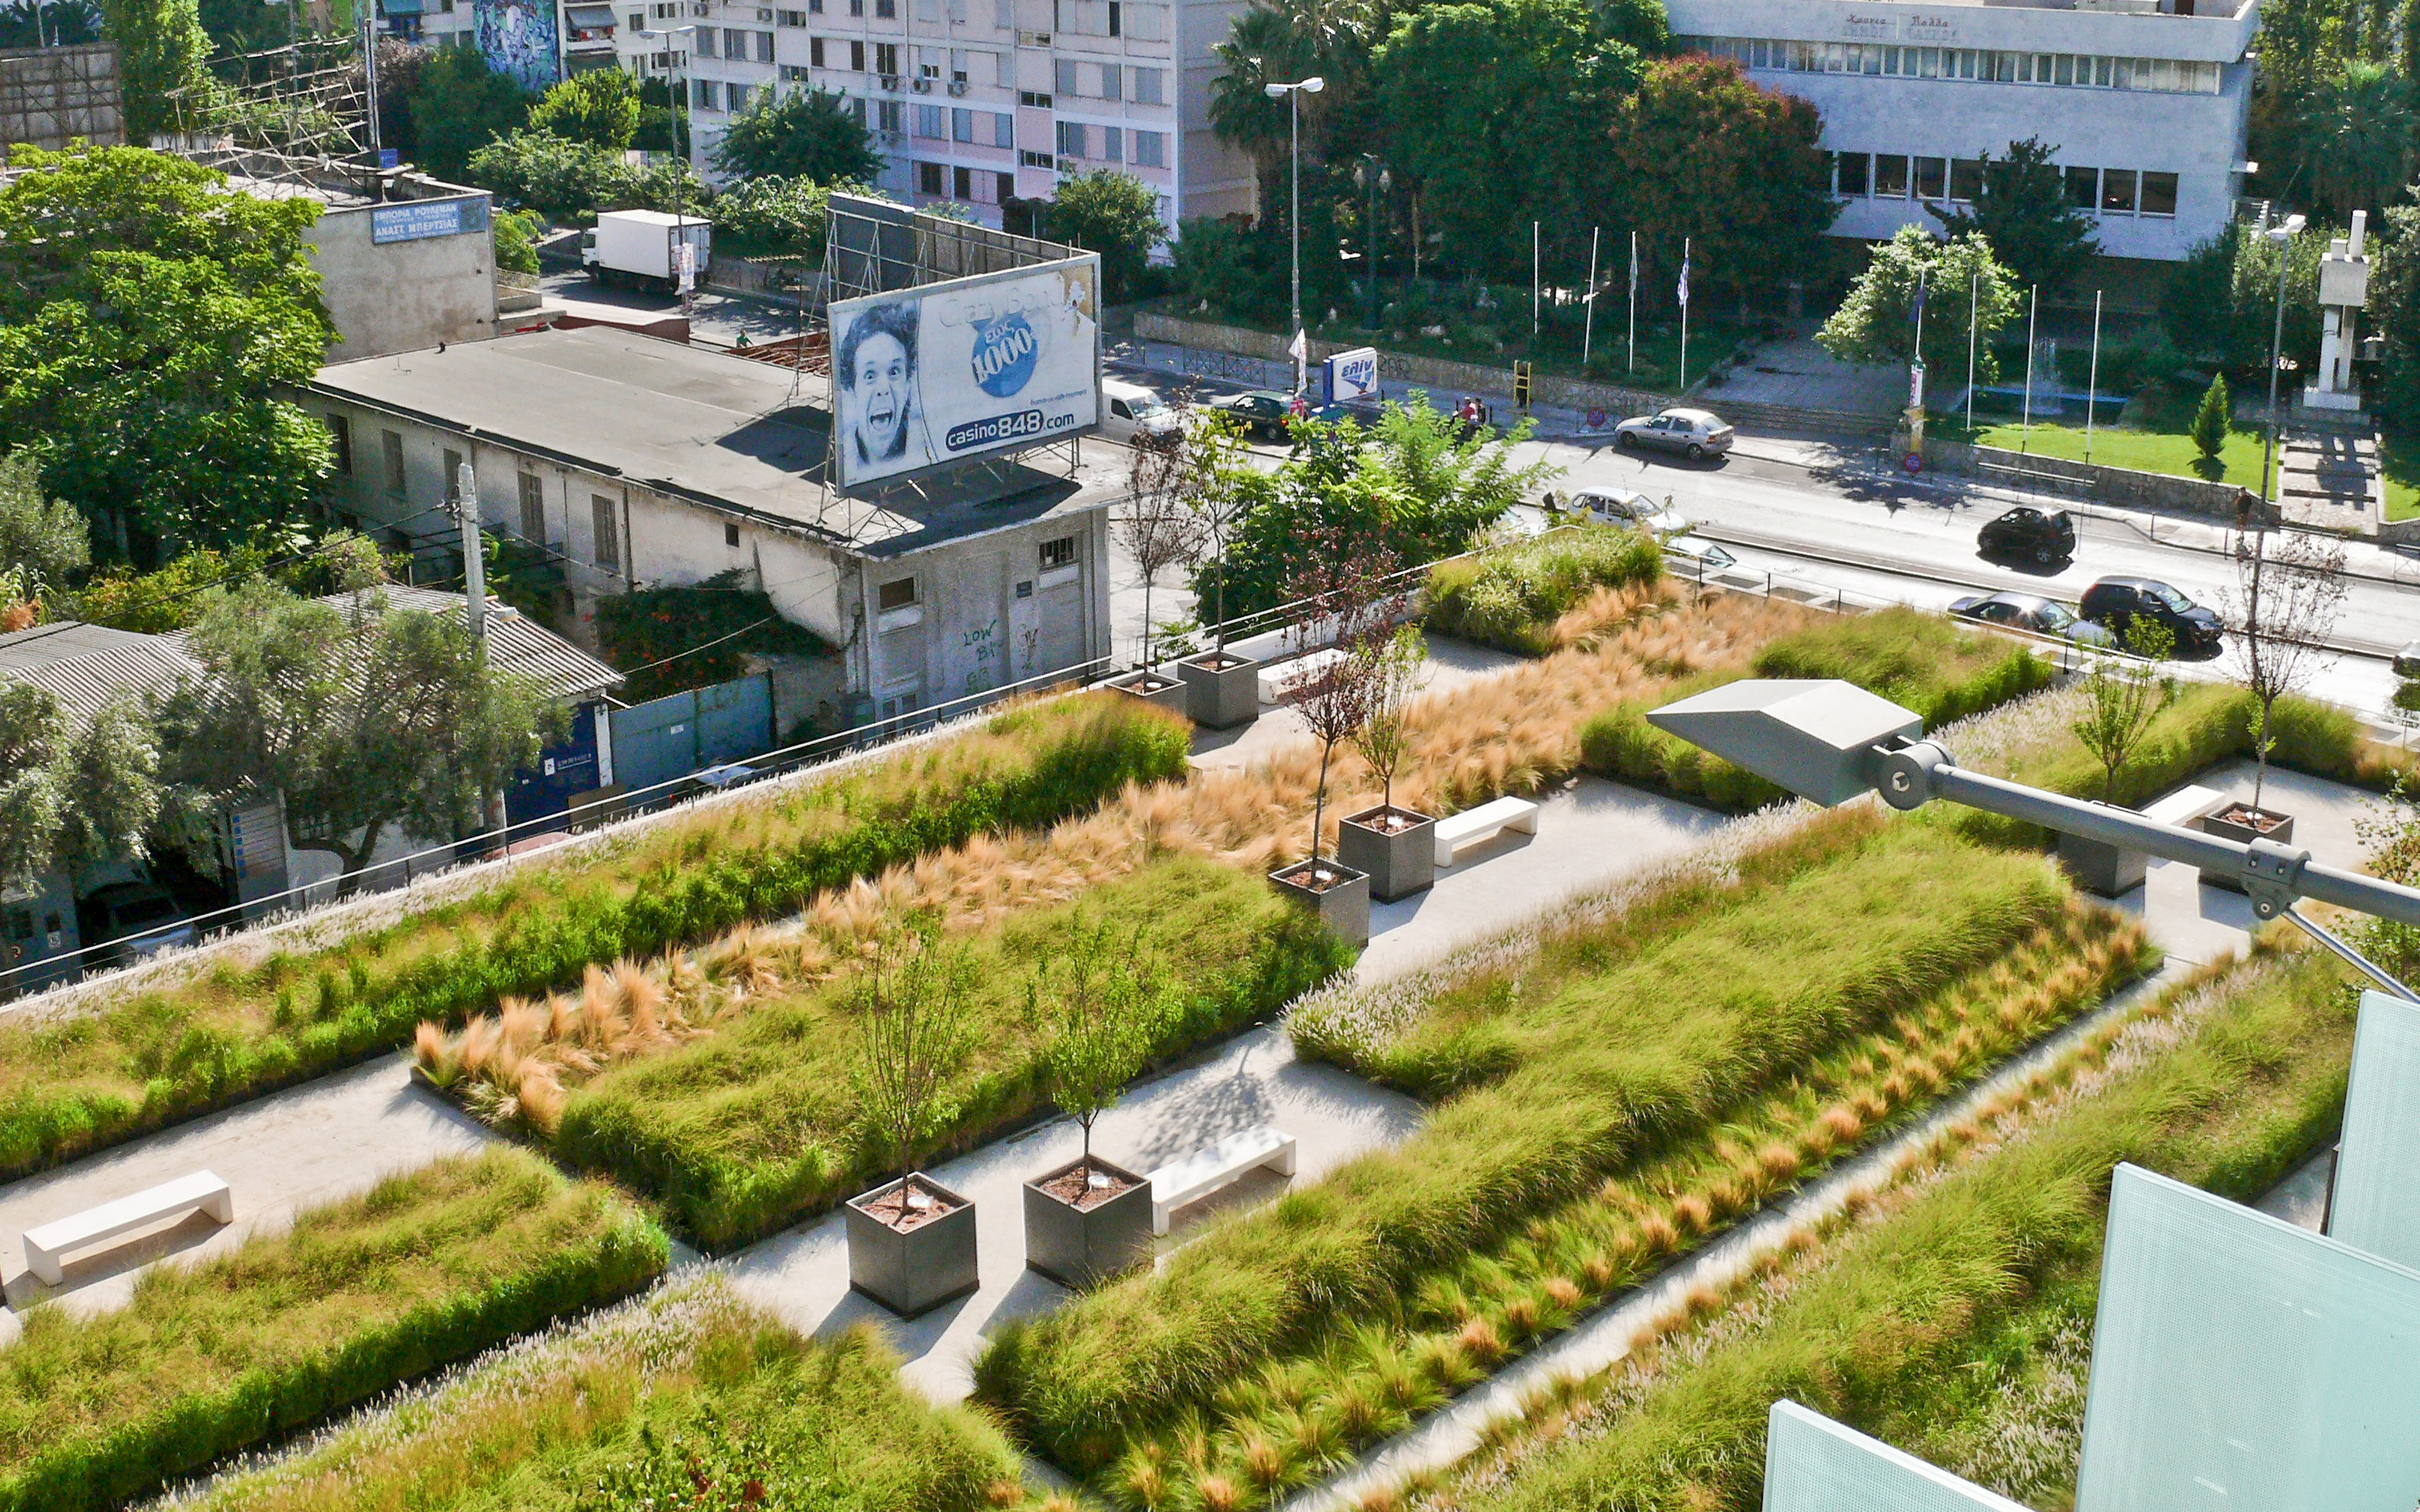 Bird's eye view onto a roof garden with ornamental grasses